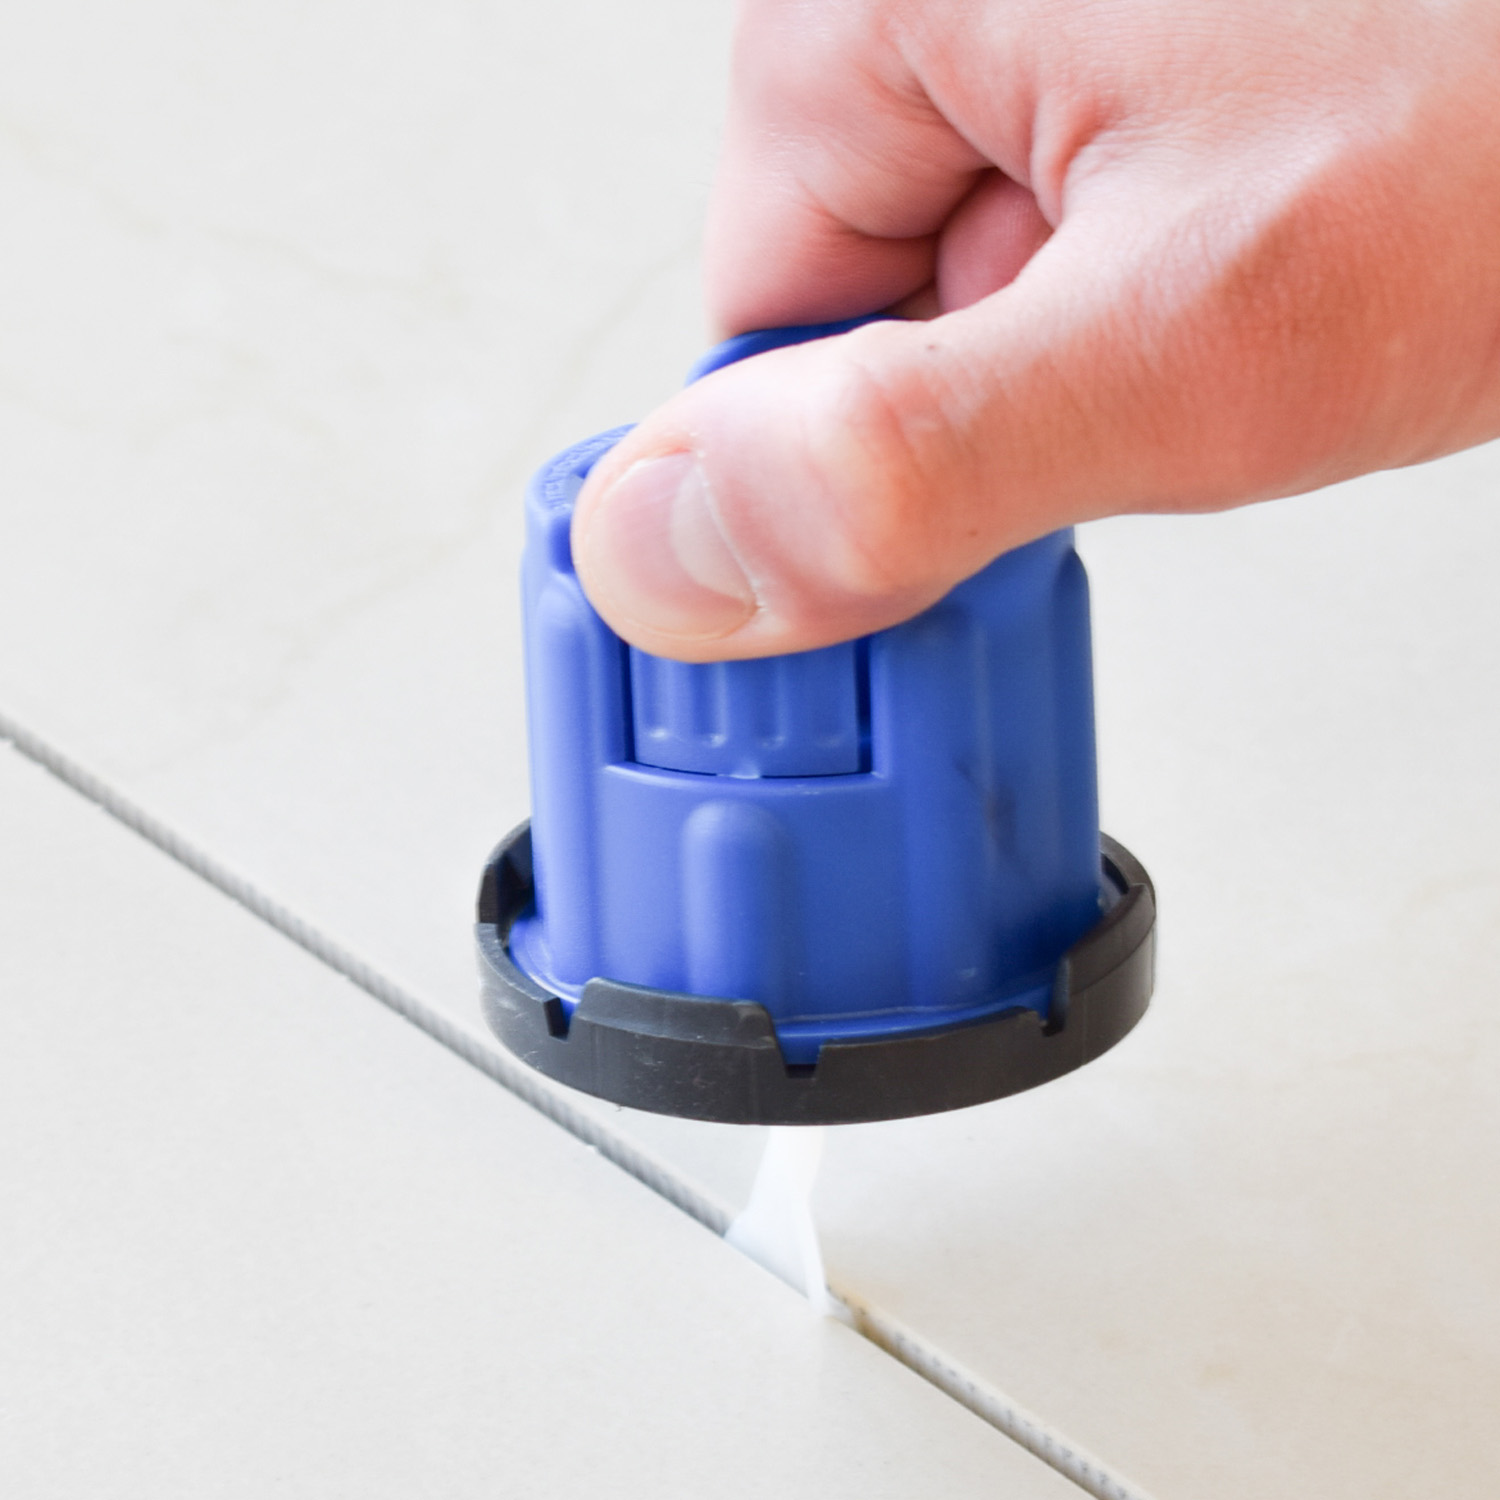 Pro Quick Leveling System Floor and Wall Tiles - Starter System by PSC